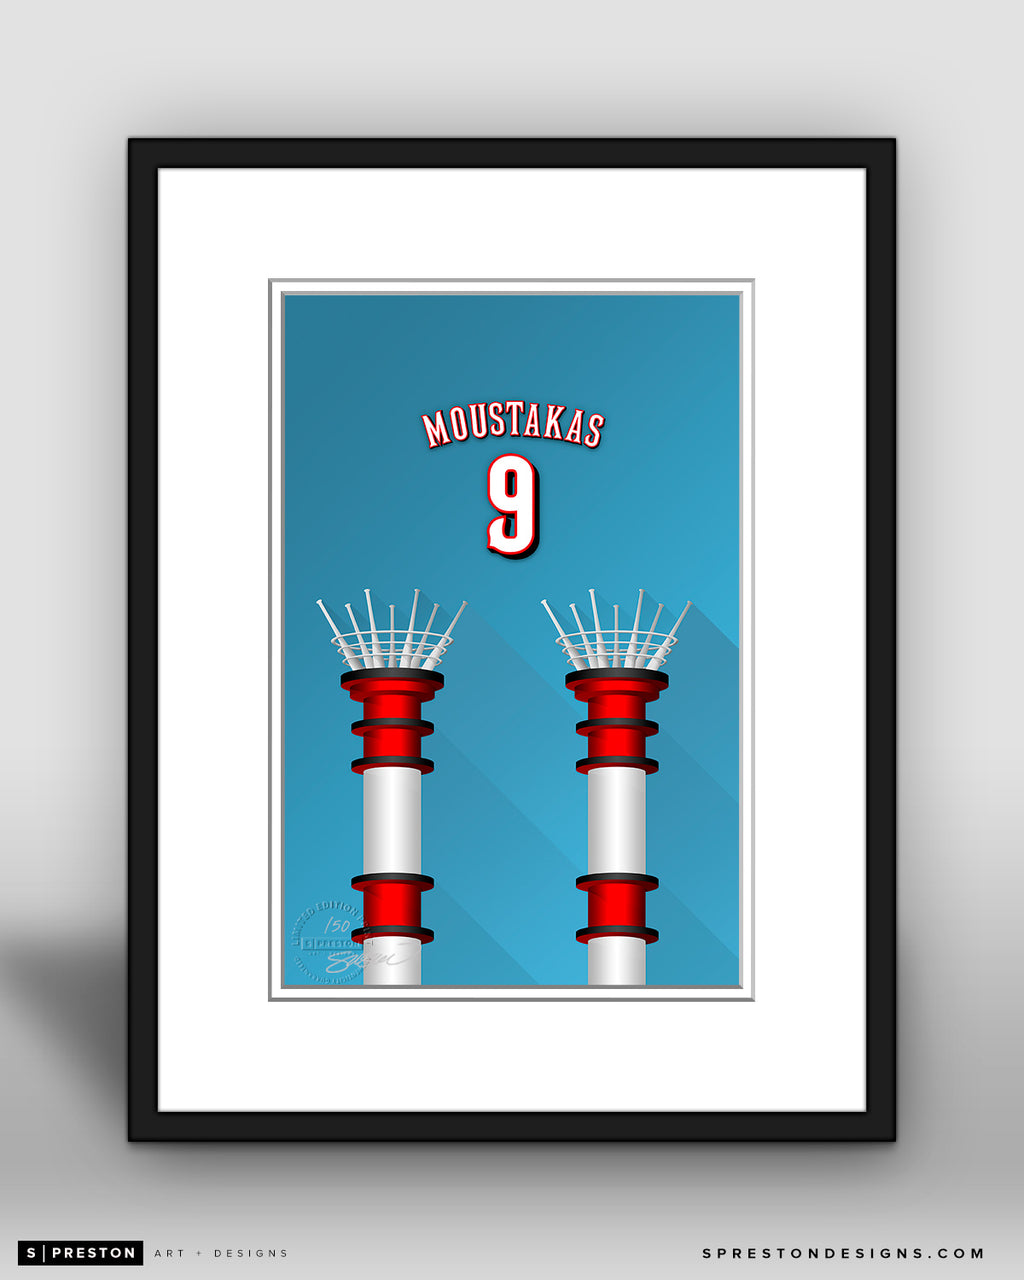 Minimalist Great American Ball Park - Player Series - Mike Moustakas